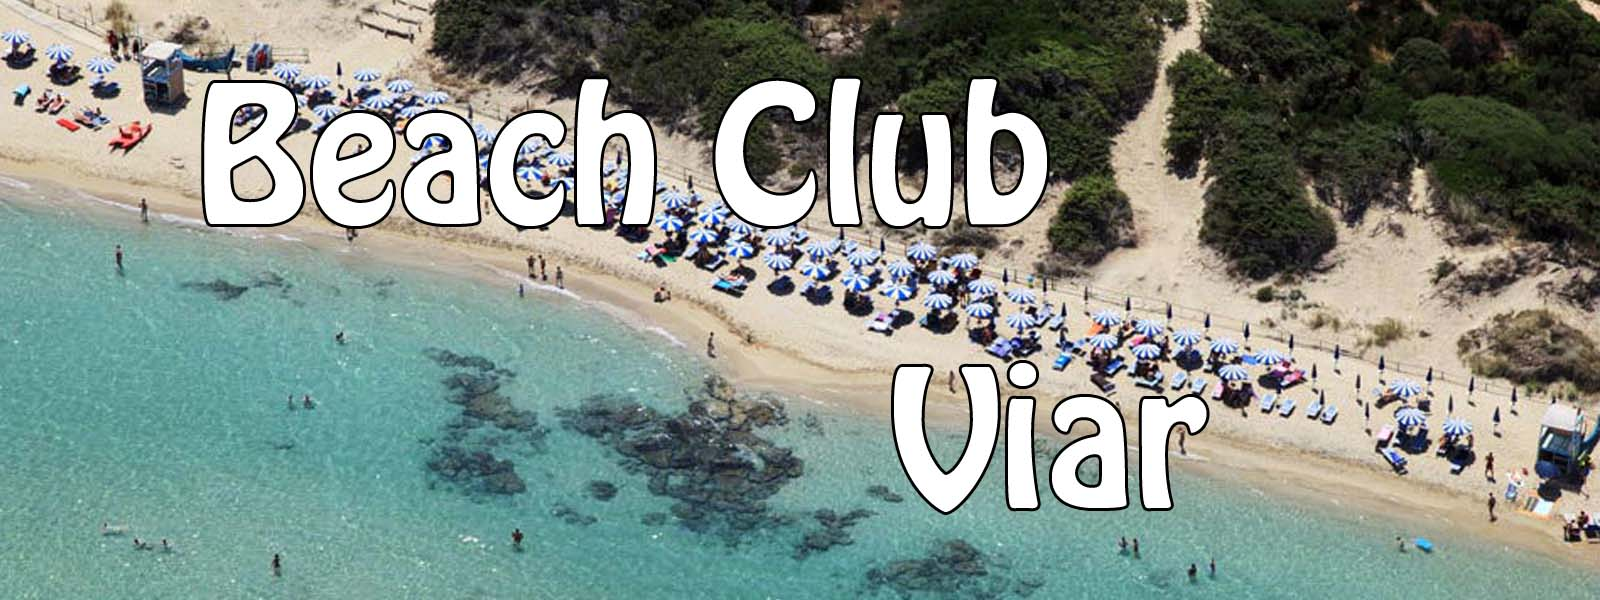 Viar Beach Club a Ostuni